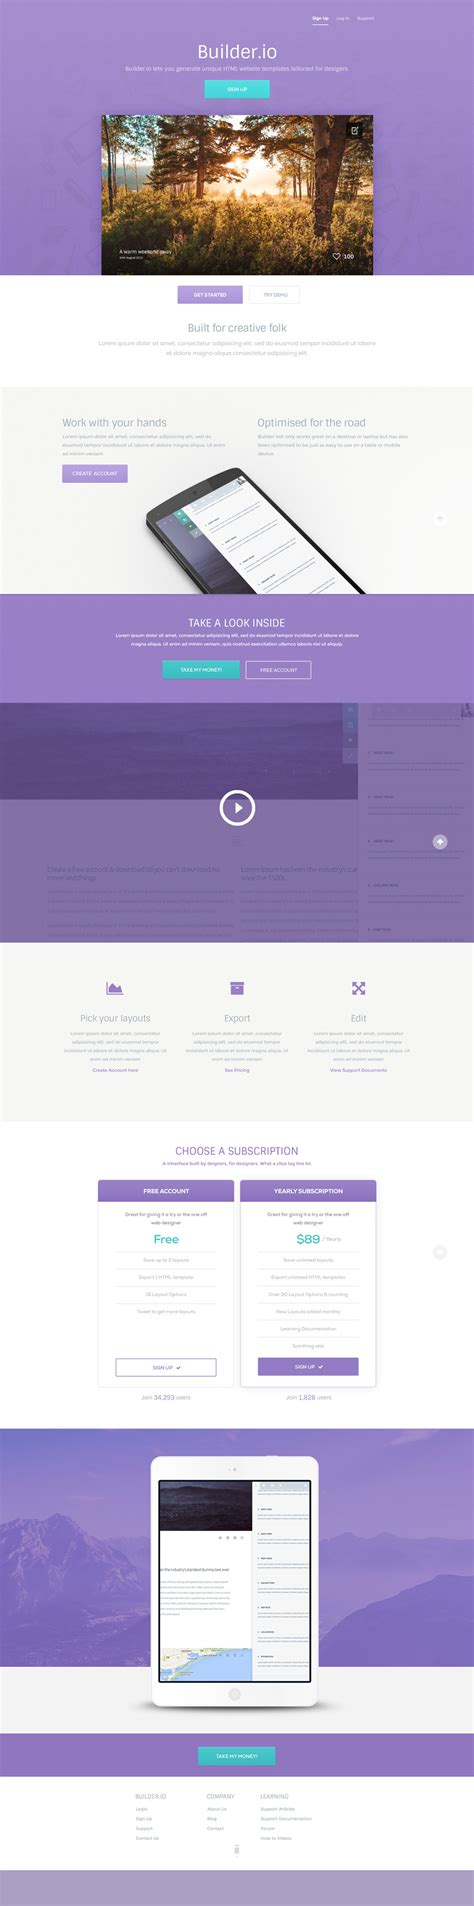 Builder A Free Vibrant Web App Psd Template Website Builder Free Templates